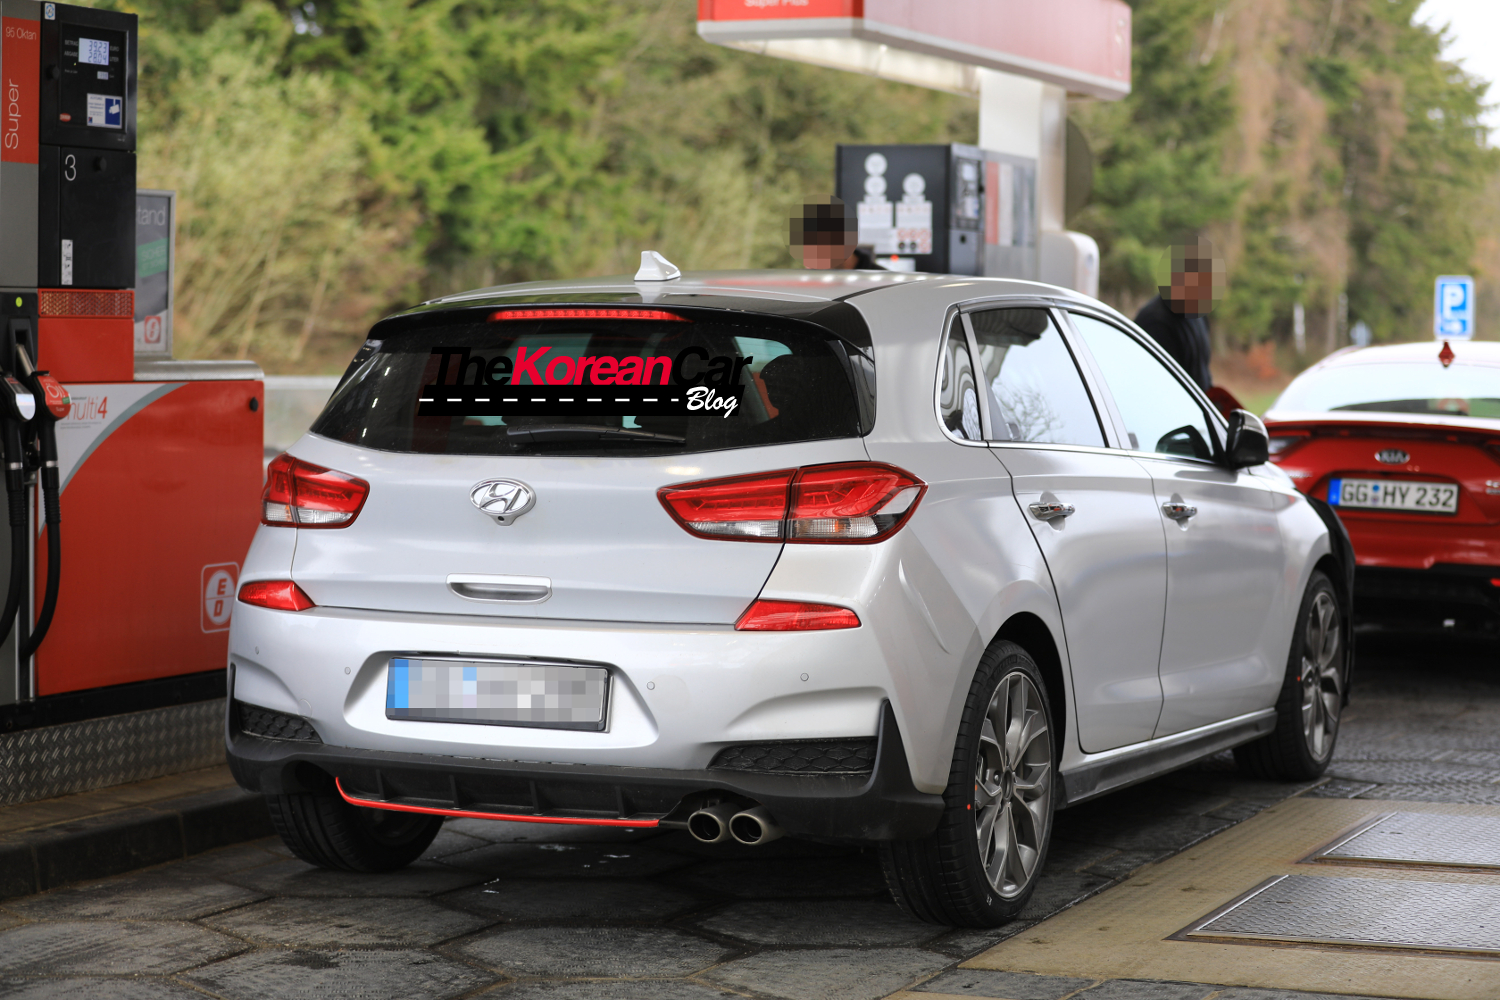 Hyundai i30 N-line Package Spied - The Korean Car Blog